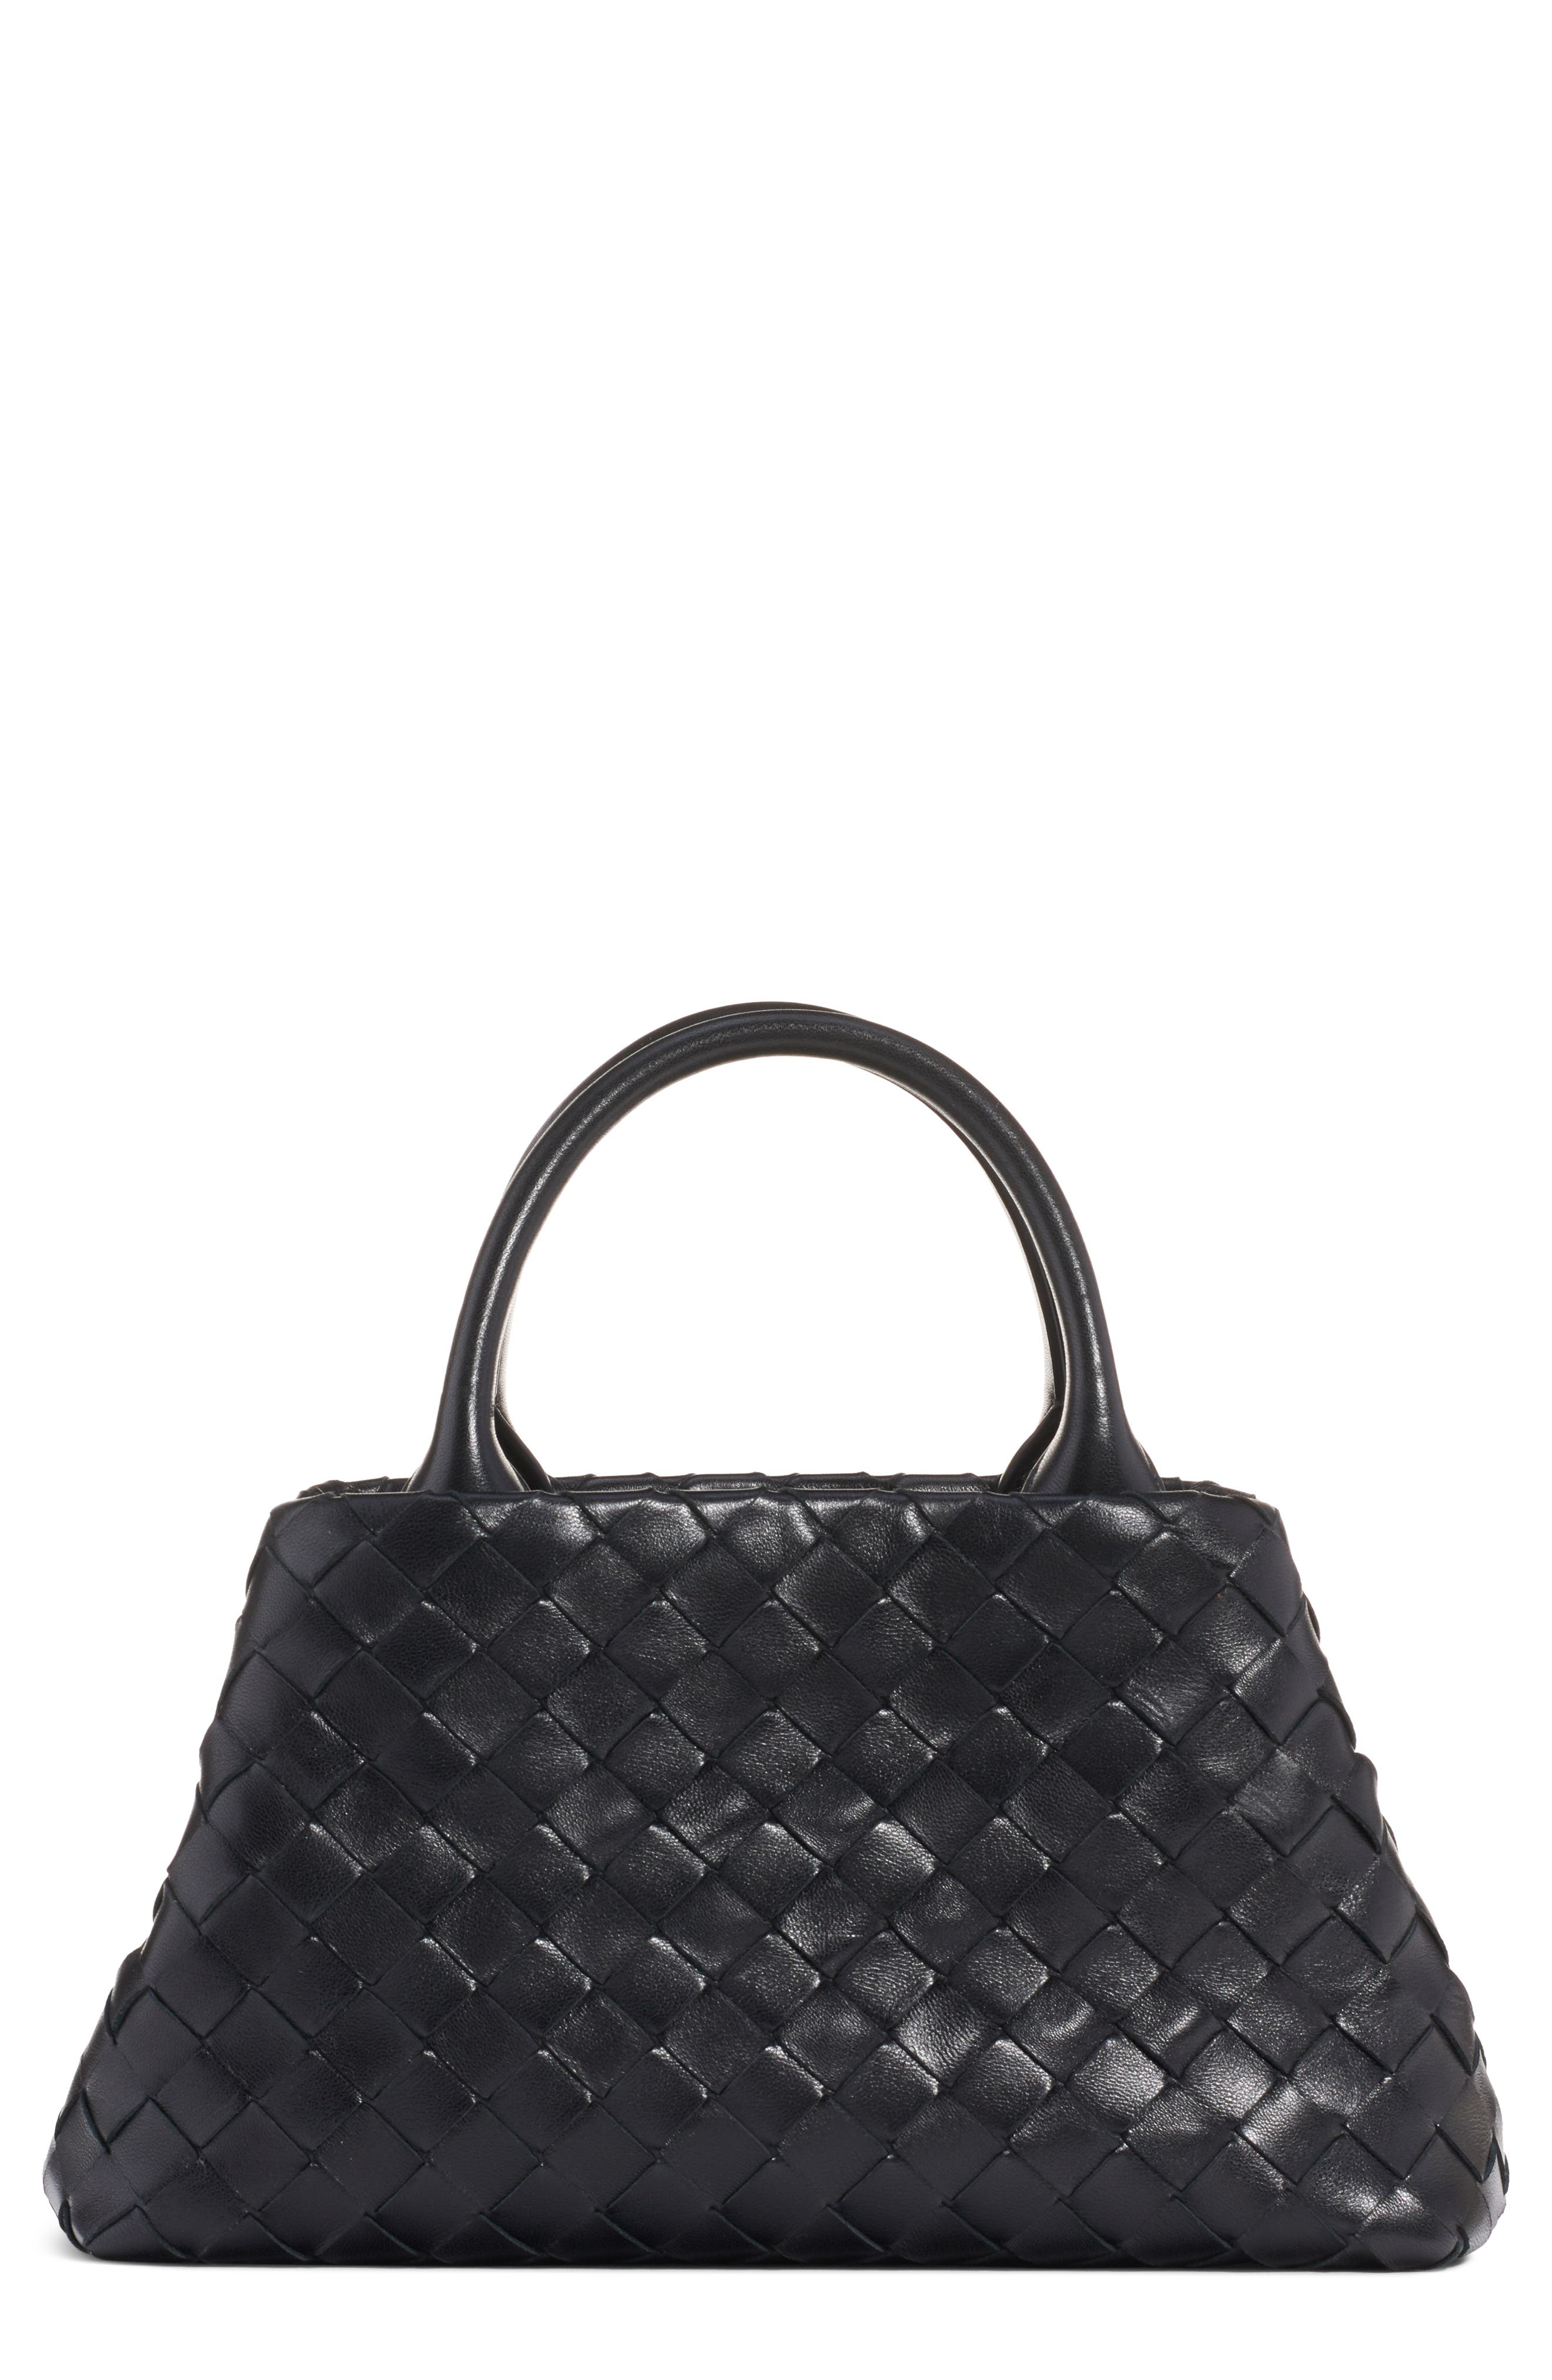 The brand\\\'s iconic intrecciato weave-handwoven strips of lambskin nappa leather-textures this double-handled tote. The divided interior helps keep your daily essentials organized, while the flat base prevents the bag from tipping over when it\\\'s set down. Style Name: Bottega Veneta Mini Intrecciato Leather Double Handle Tote Bag. Style Number: 5946817. Available in stores.